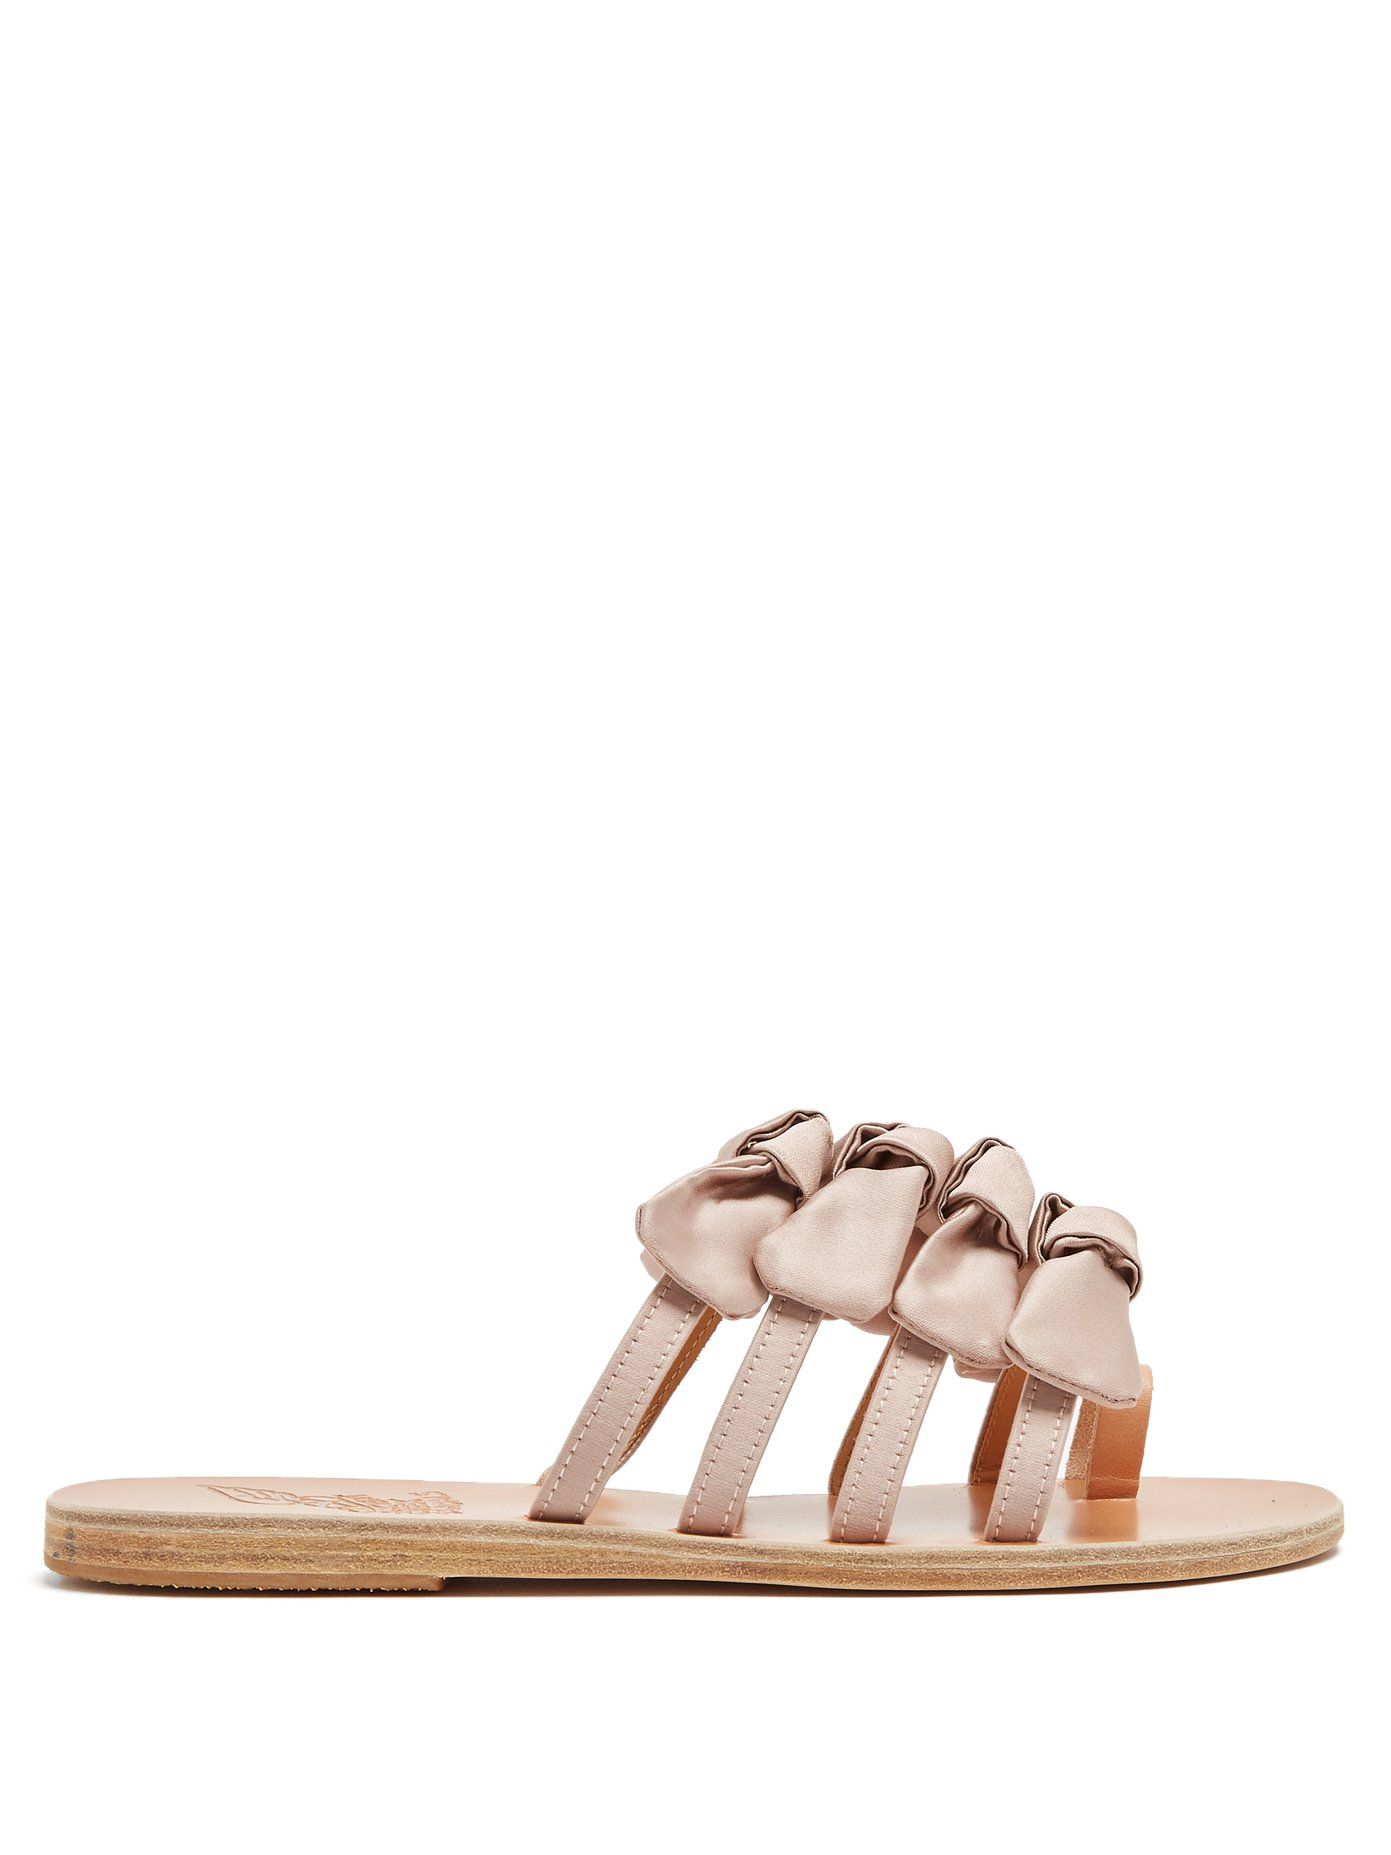 New Finishline Online Ancient Greek Sandals Hara bow-embellished leather slides Cheap Sale Shop Cheapest Online TyMYXPX